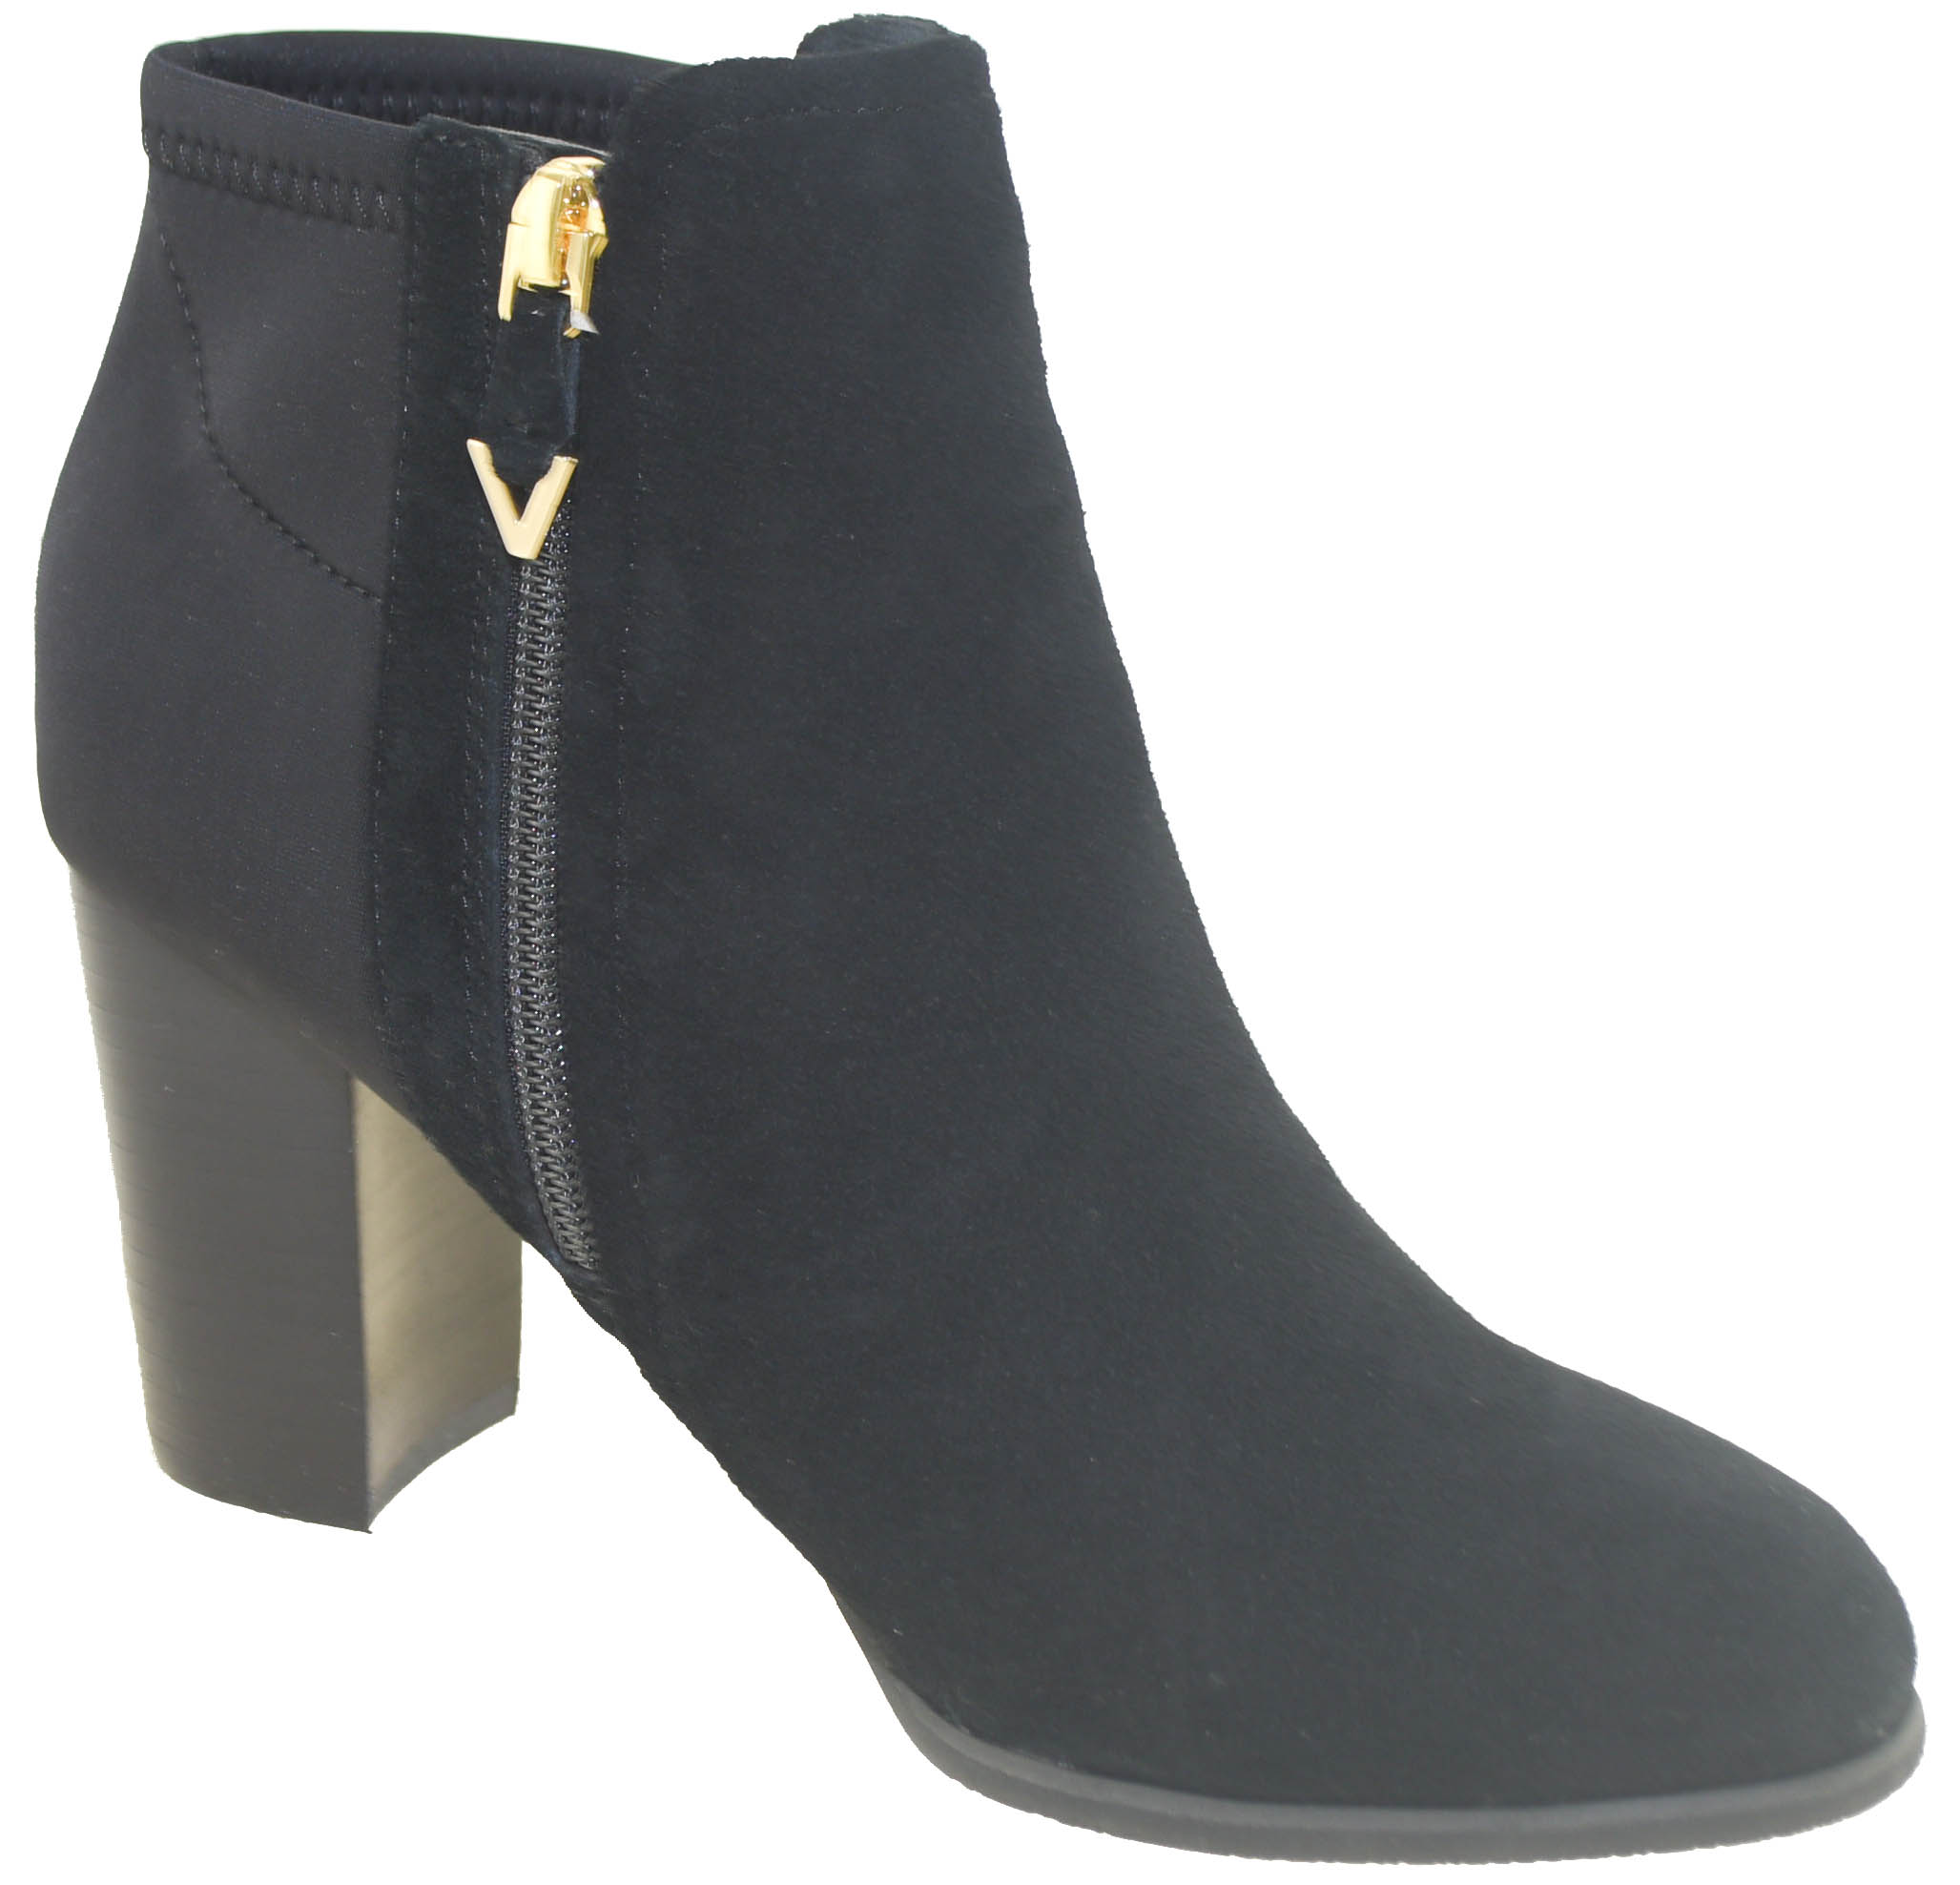 88a82660a6f Details about Vionic Women's Perk Whitney Ankle Boot Black